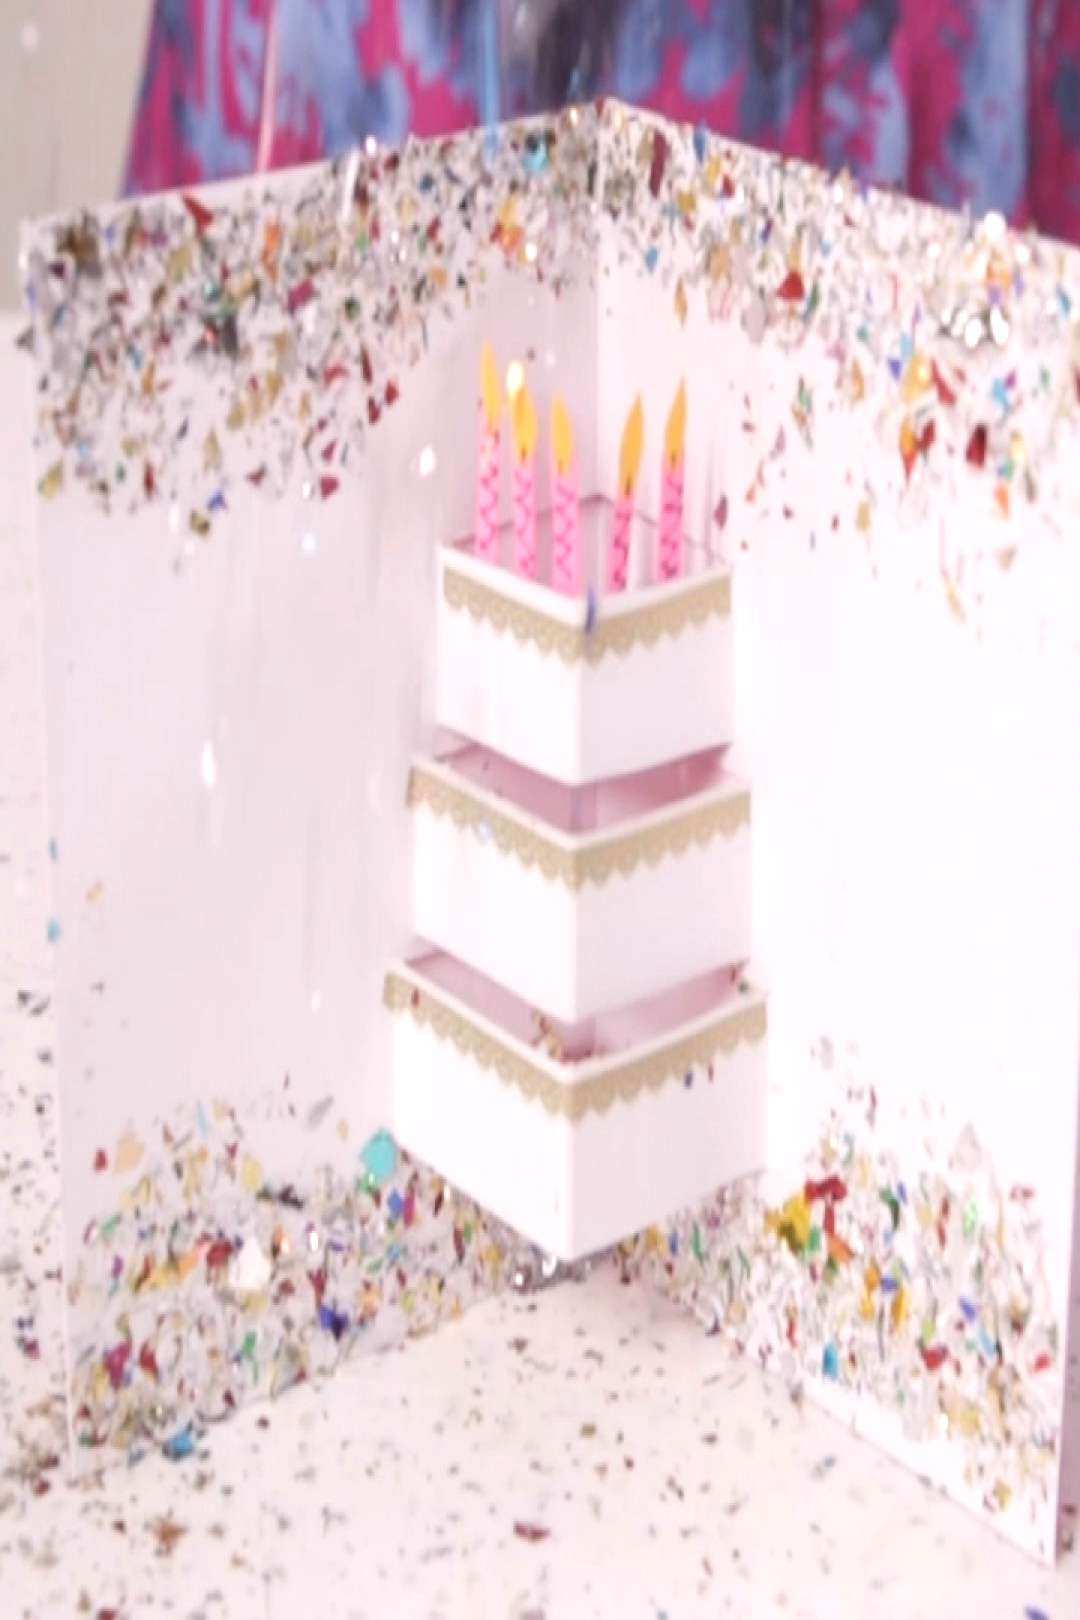 Make a DIY Pop-Out Birthday Card Show someone how much you care with a festive handmade birthday ca